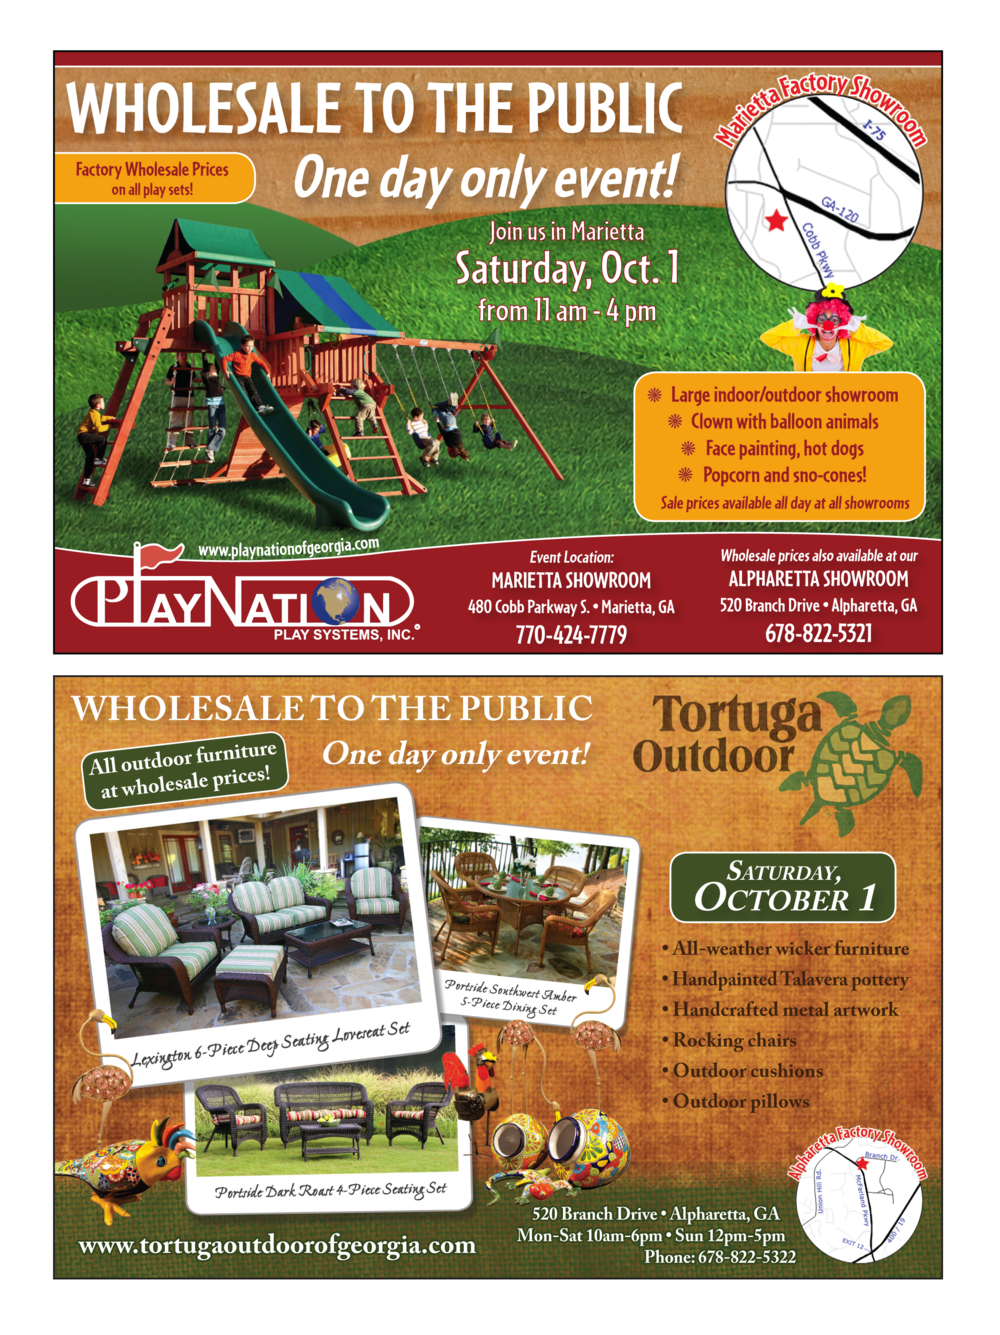 2011 playnation and tortuga outdoor annual sale ad